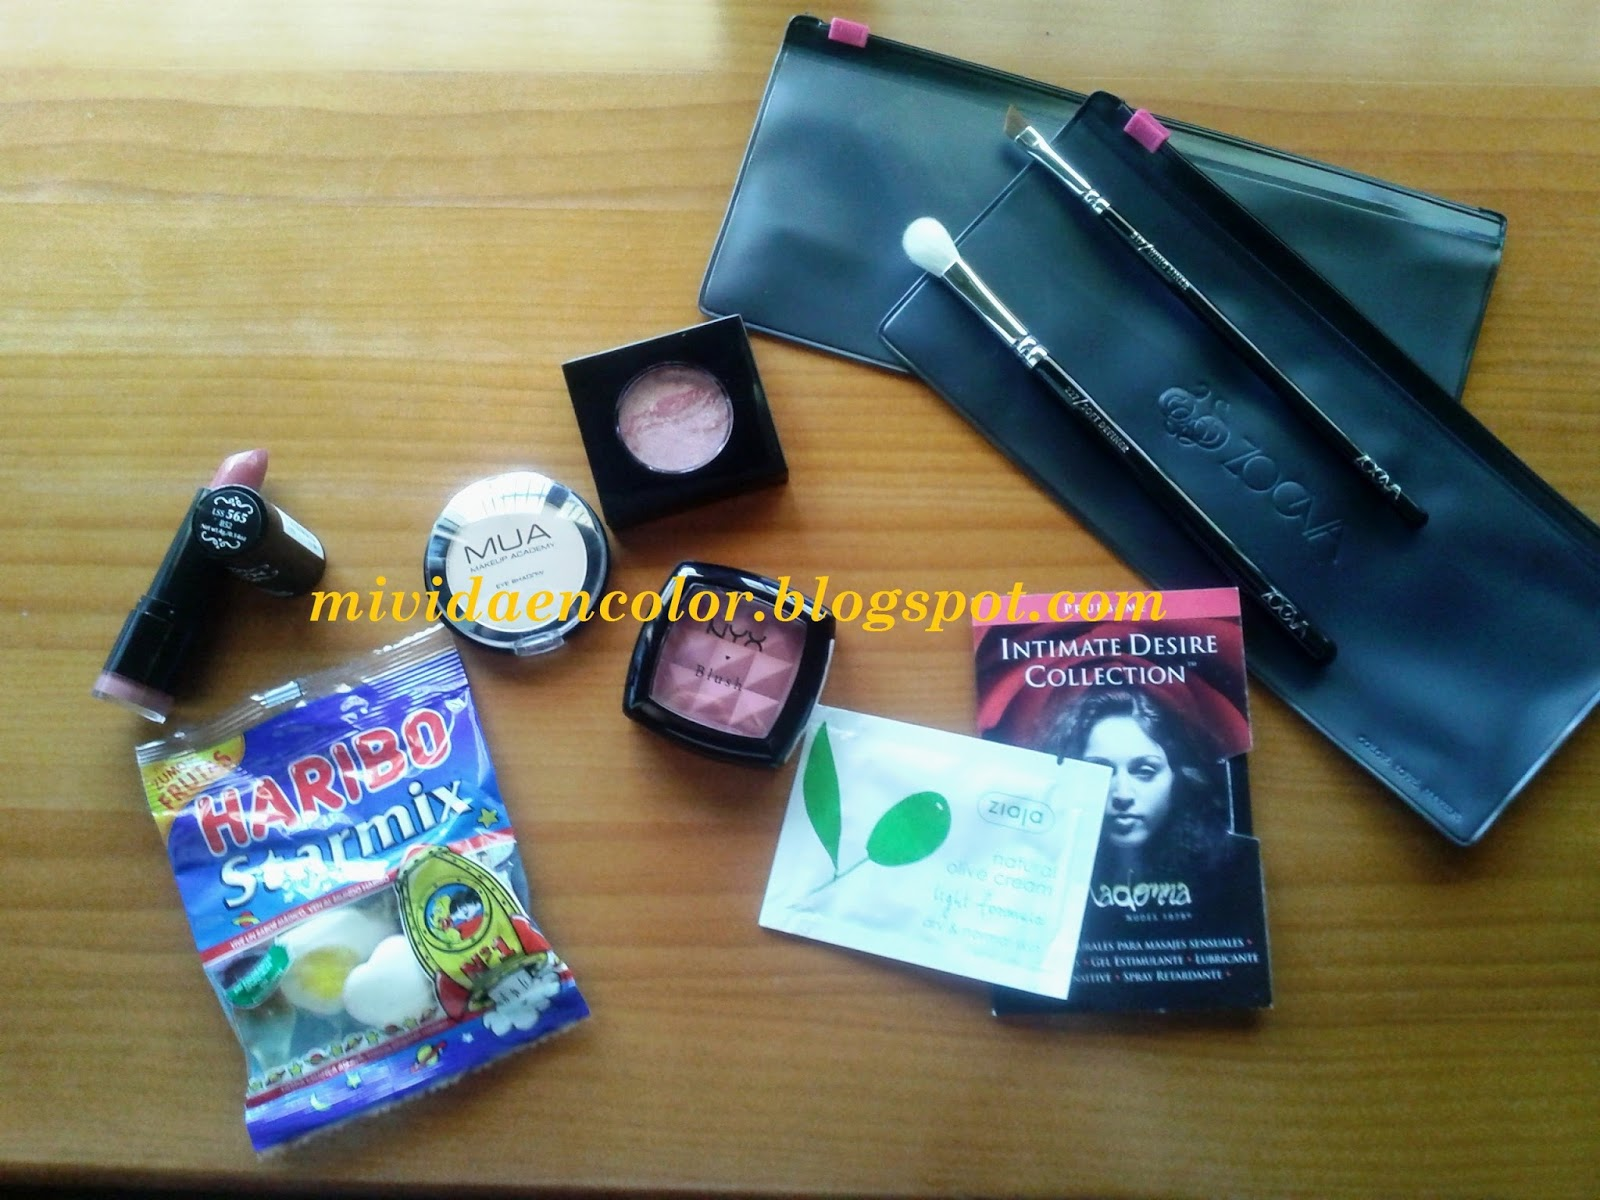 Haul-review-swatch-blog-belleza-maquillaje-cosmética-mi-vida-en-color-haul-maquillalia-pintalabios-labial-B52nyx-barra-rednda-sombra-mate-17-MUA-colorete-blush-nyx-Amber-colorte-fashionista-new york-brochas-pincles-zoeva-227-pincel-difuminar-clon-217-MAC-pincel-brocha-317-zoeva-clon 266-MAC